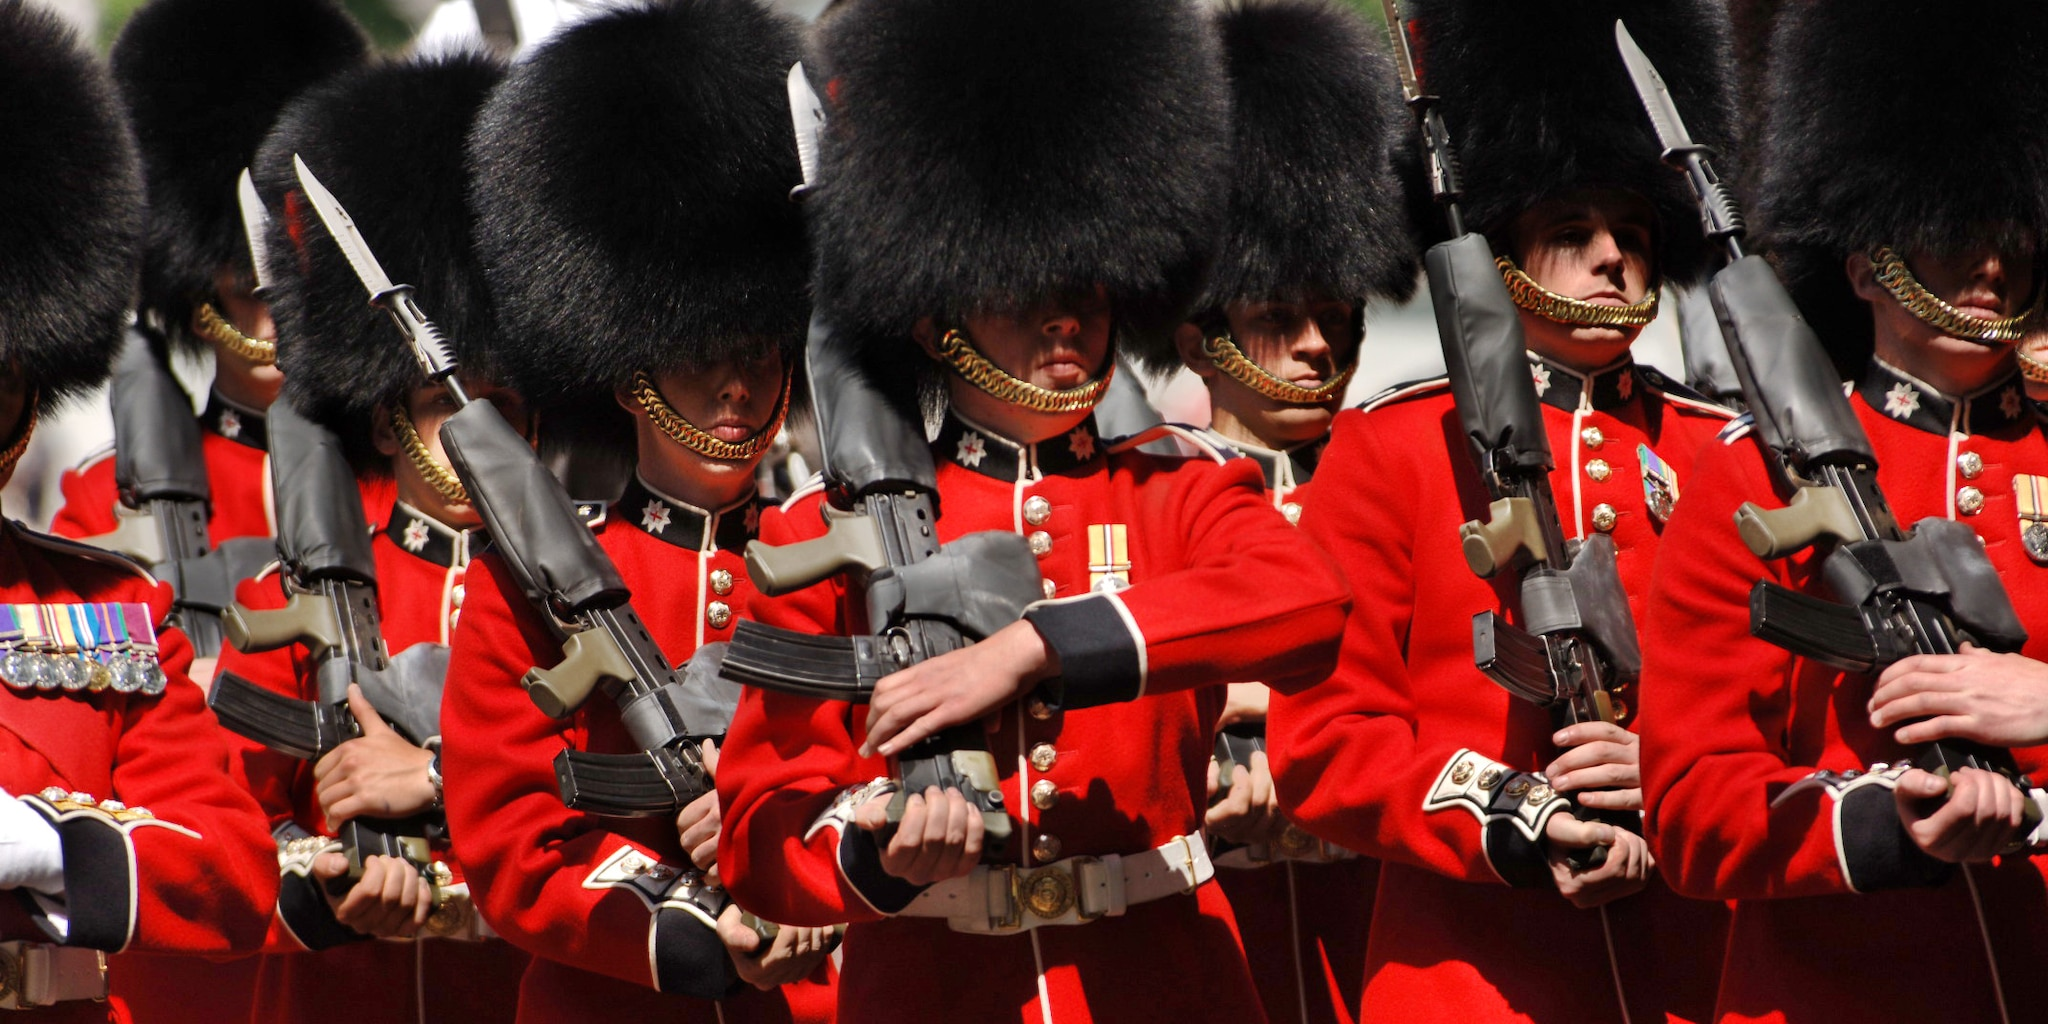 London's Beefeater guards during a drill